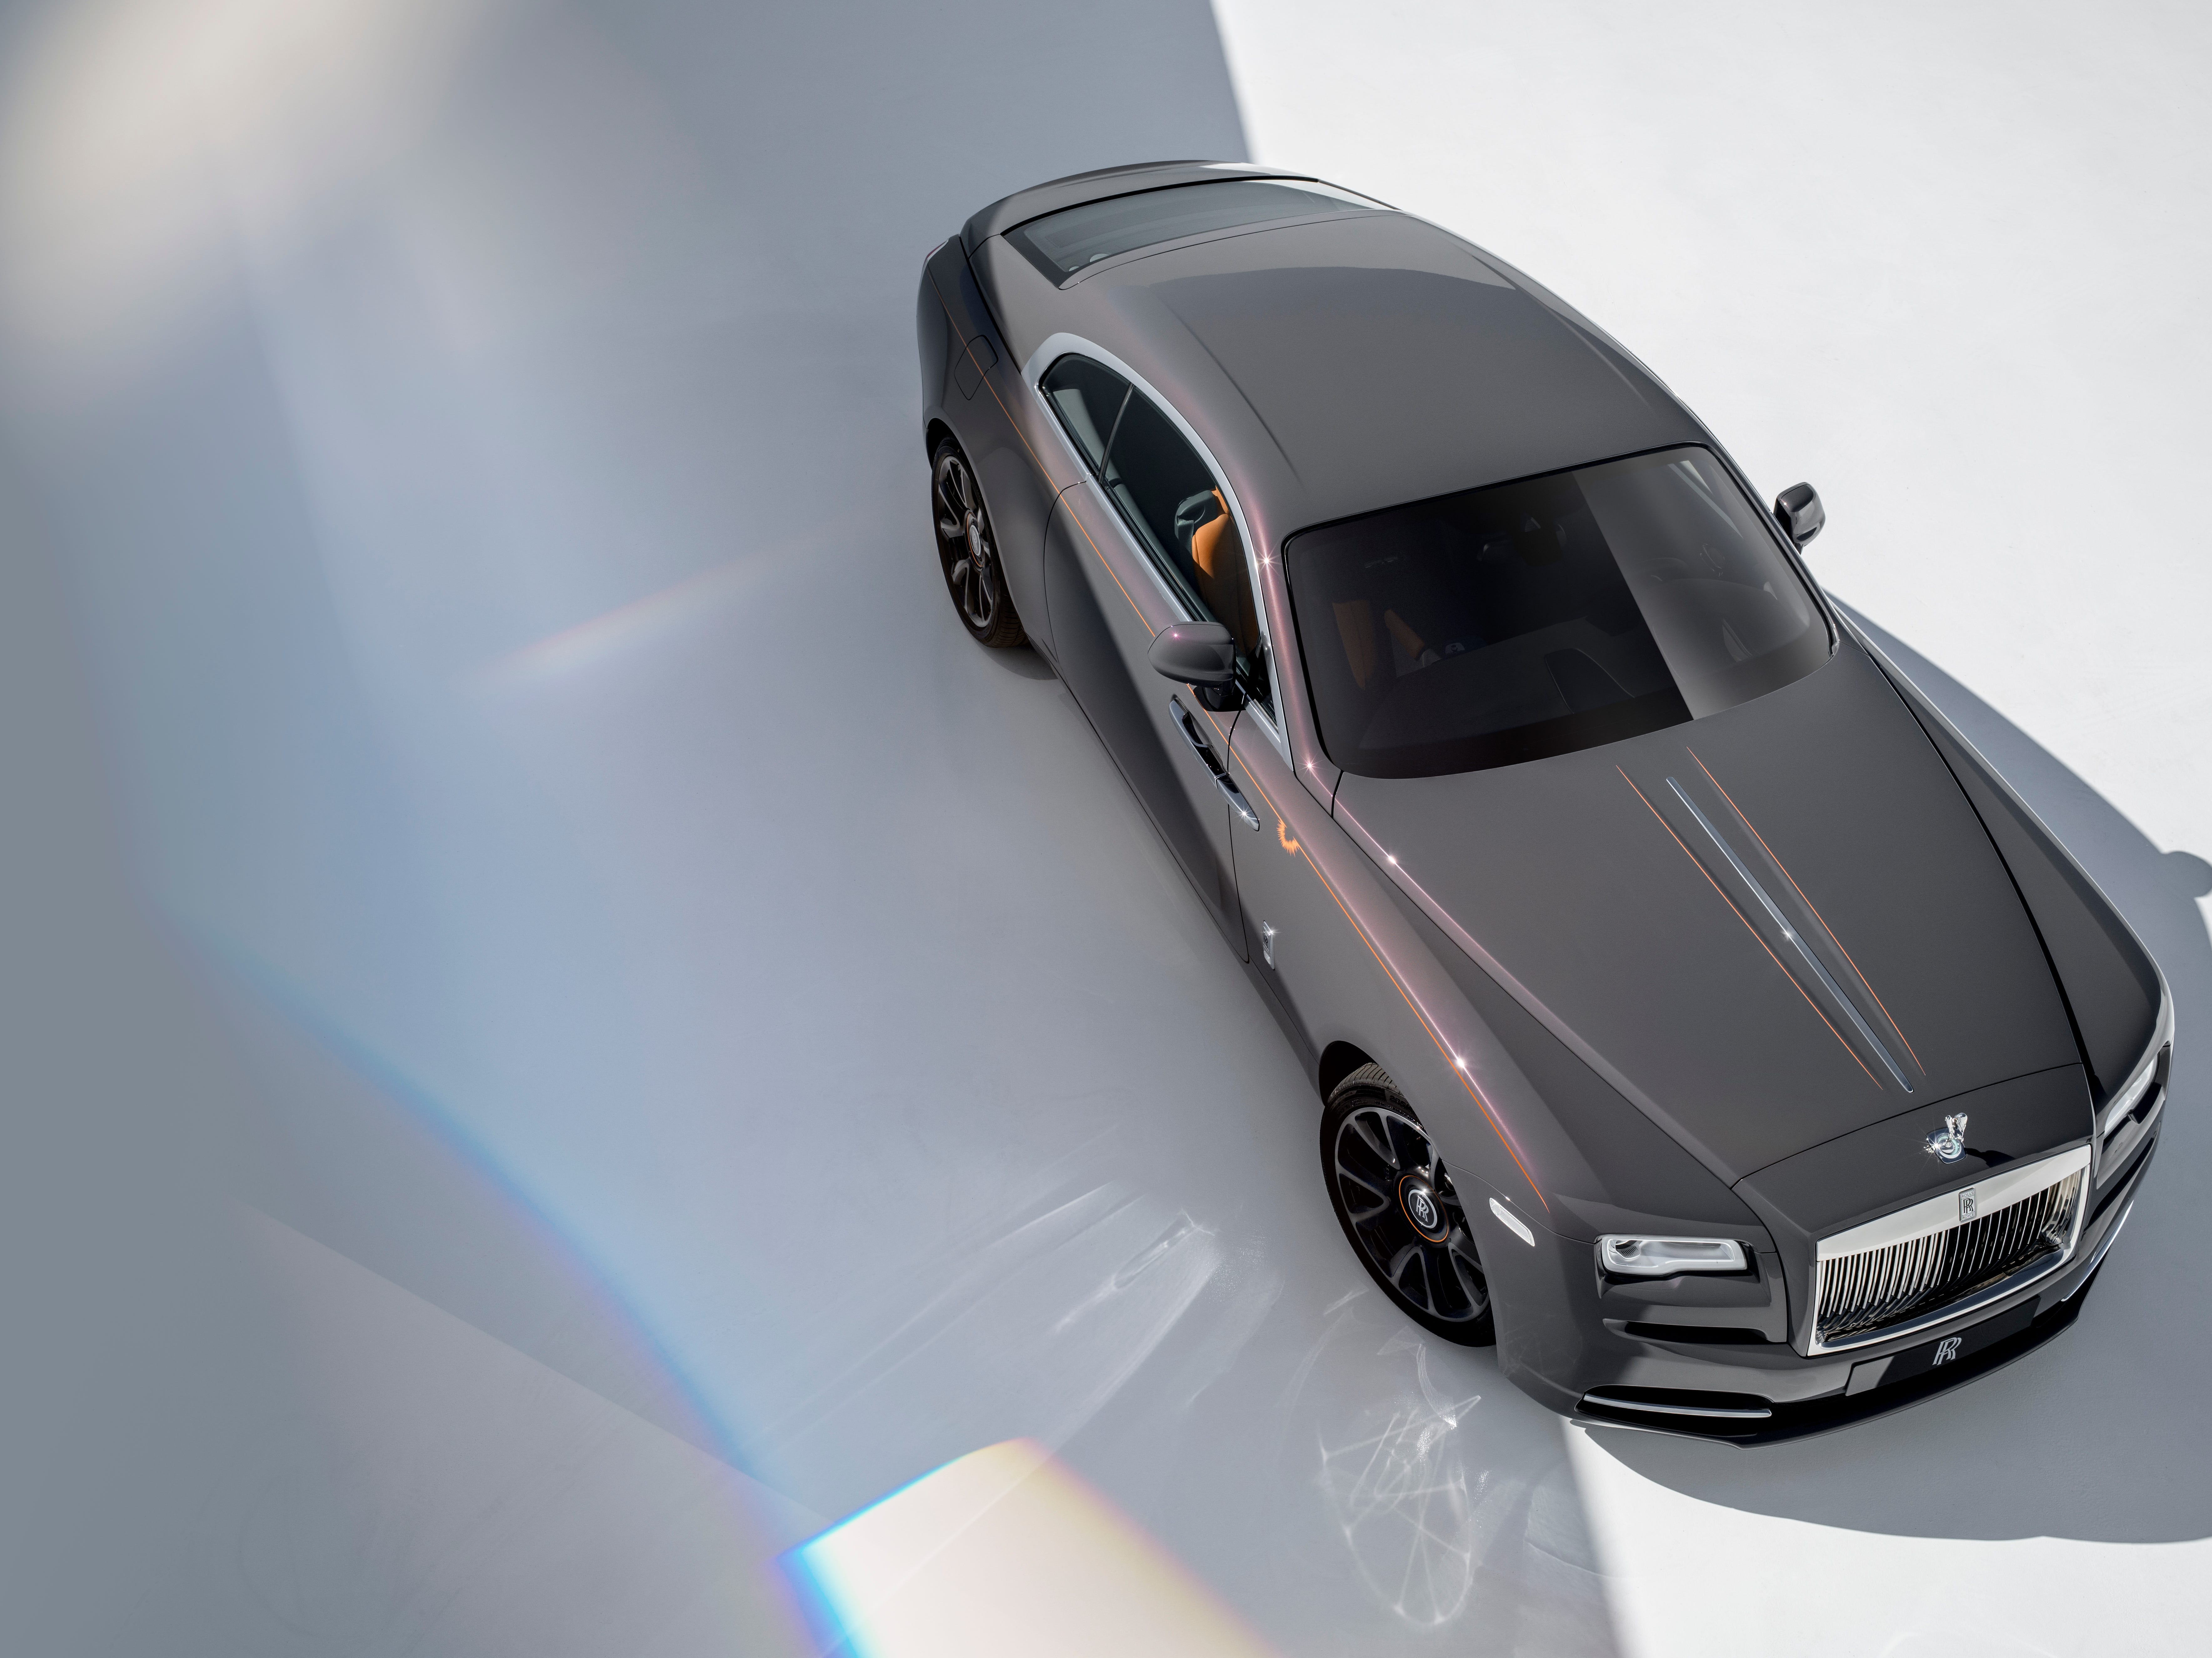 Rolls-Royce has created a Limited Collection of just 55 cars.